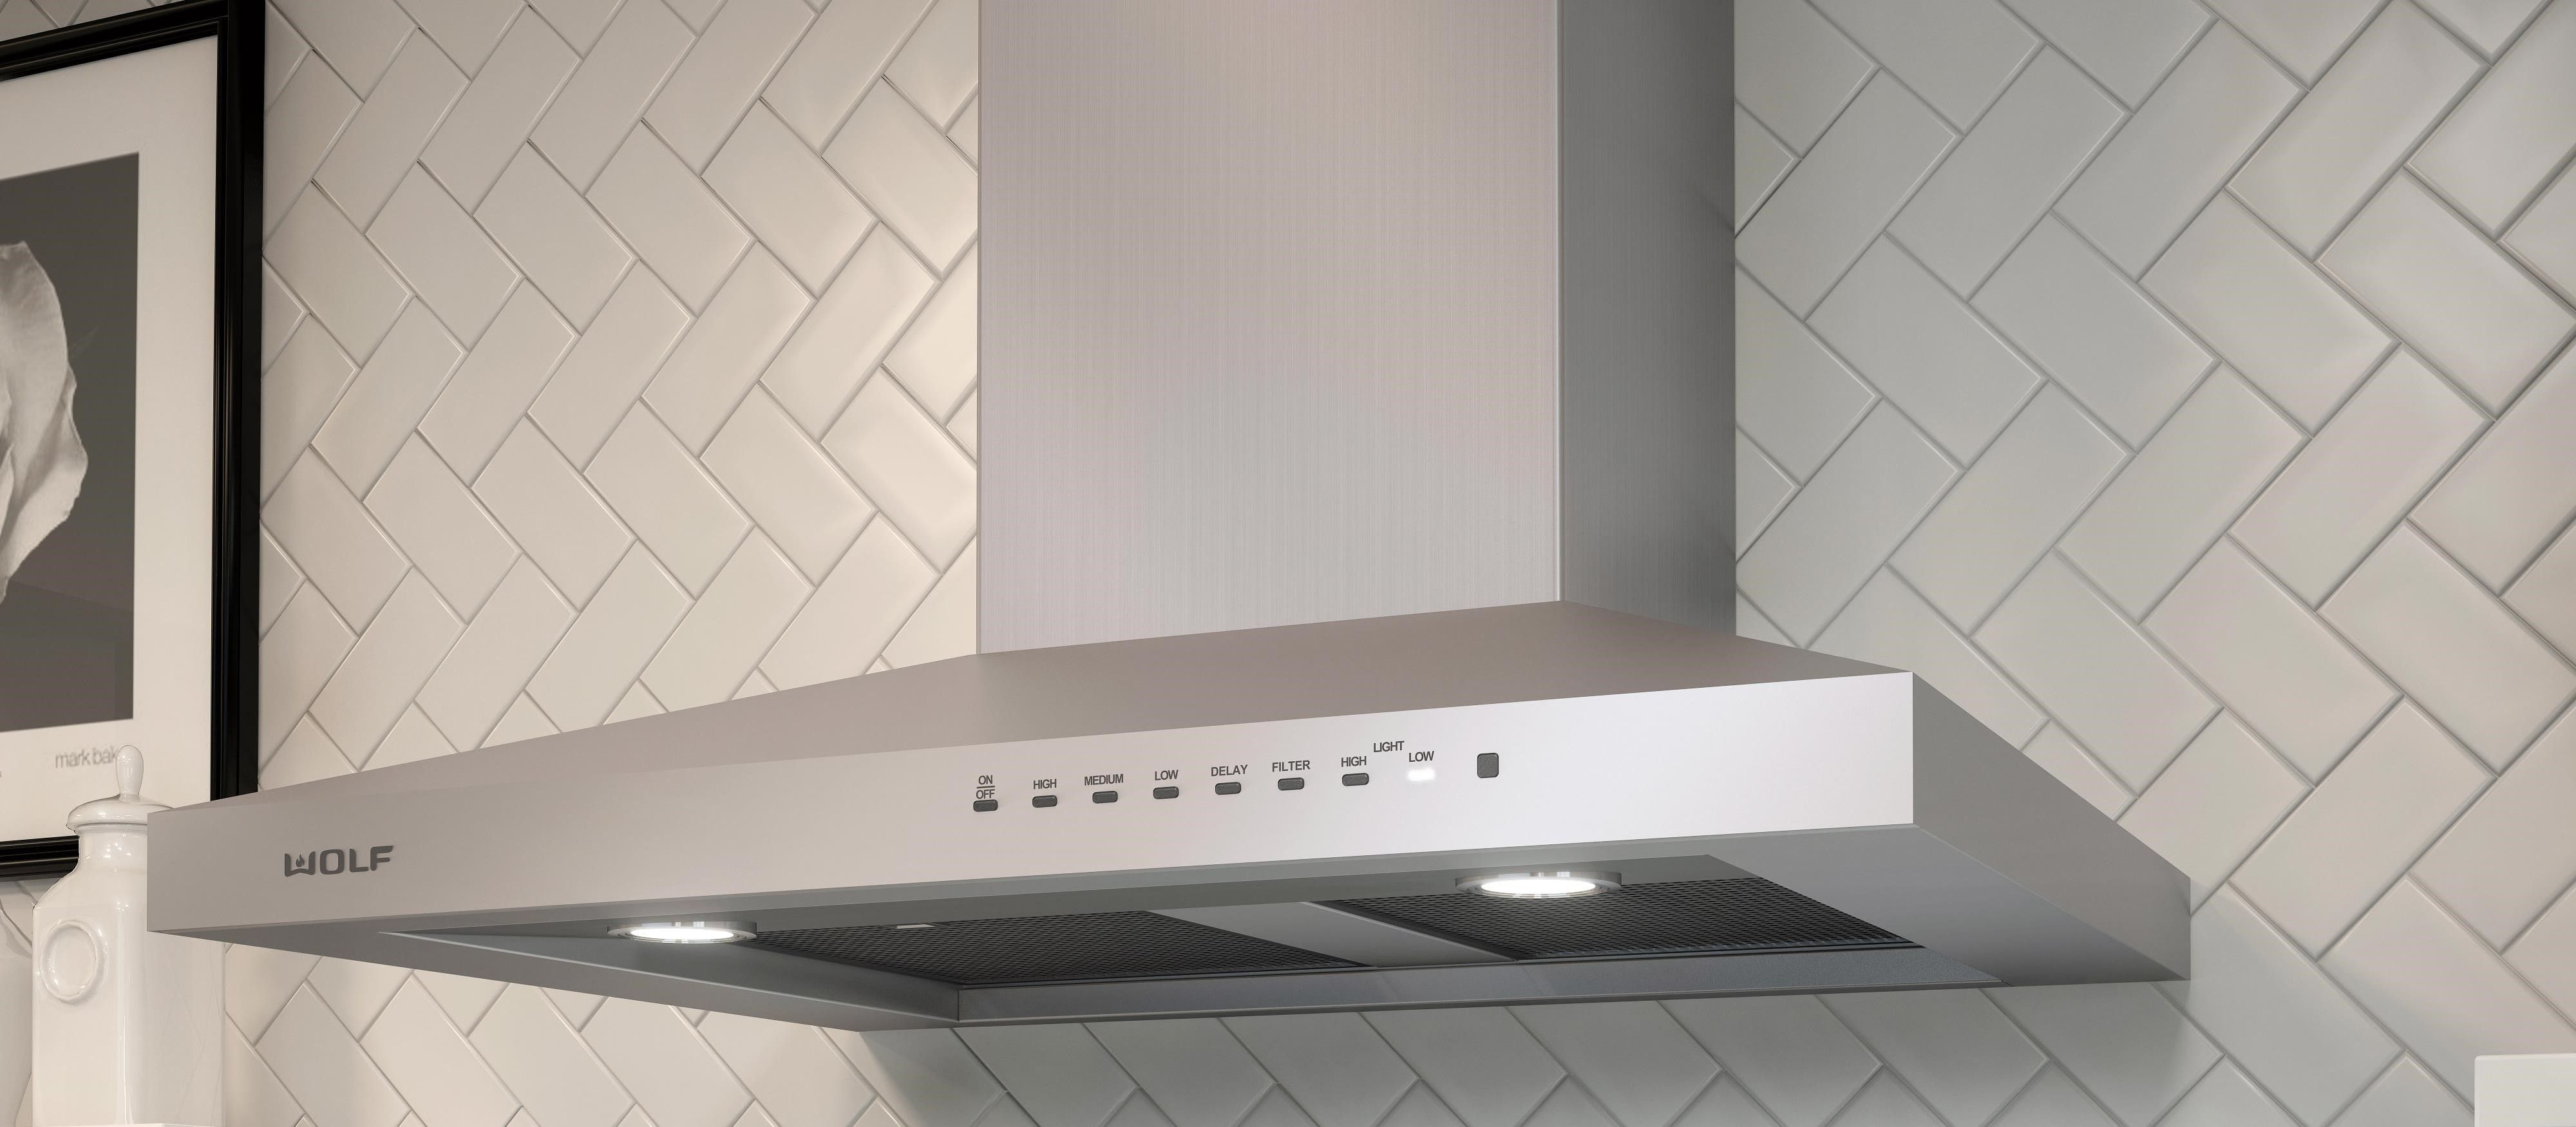 30 Cooktop Wall Hood Stainless Cooktop Stainless Wall